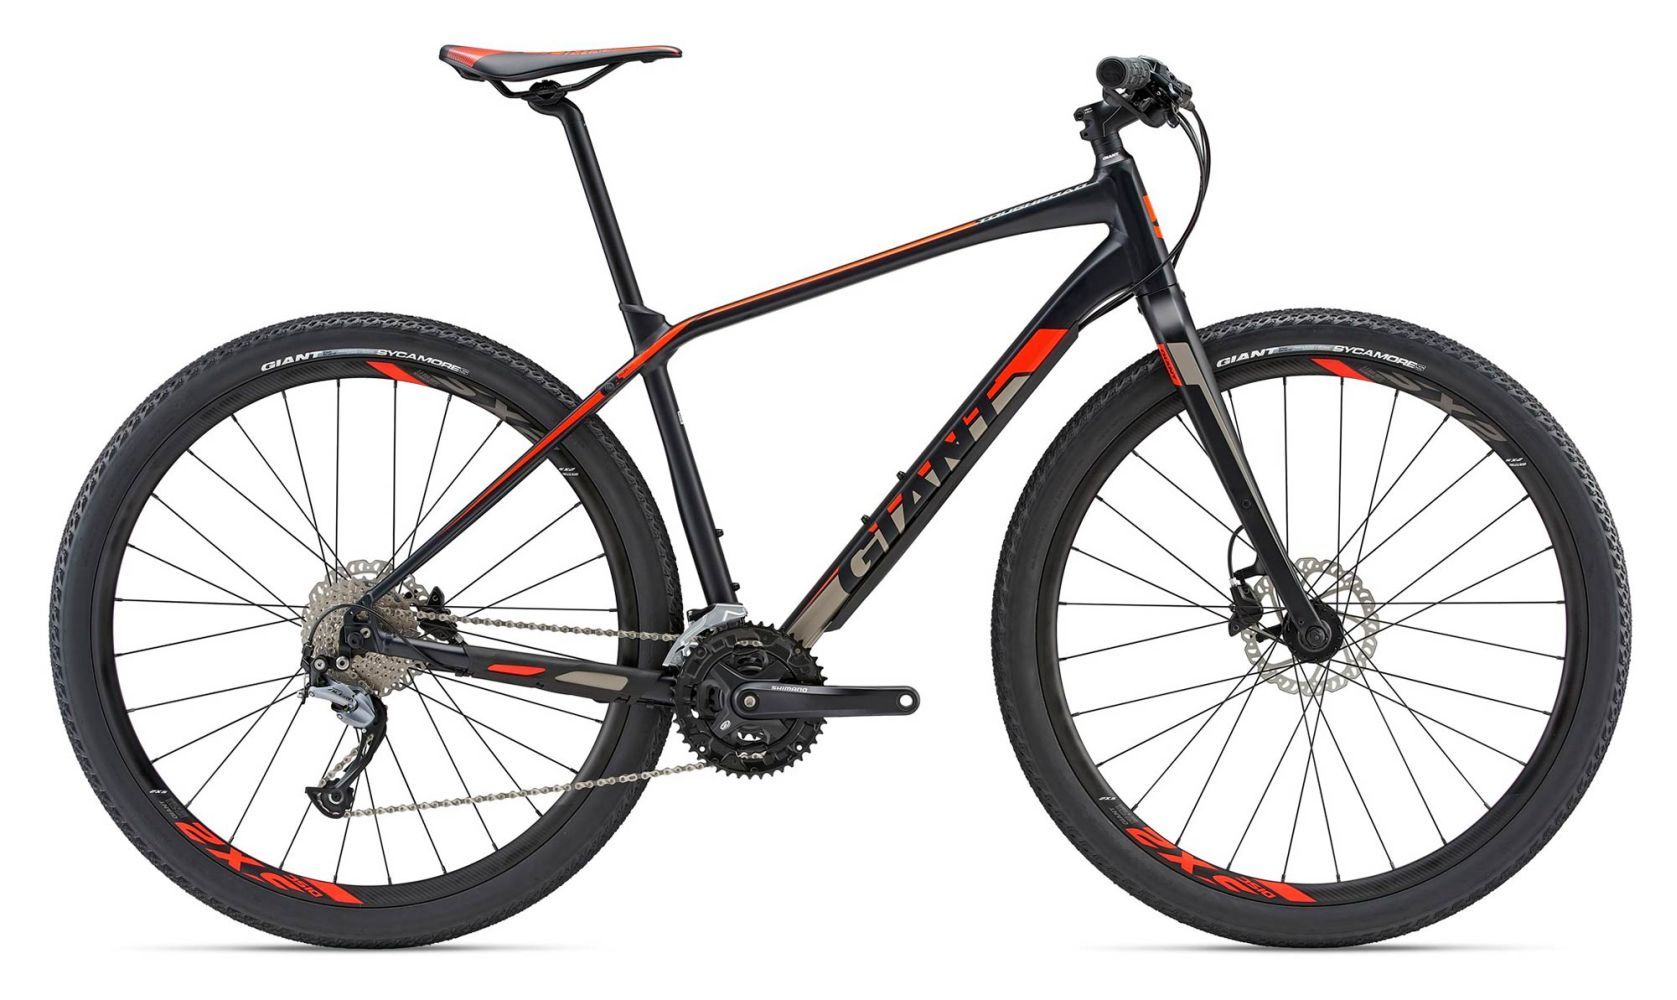 7e2b02da6e9 Giant ToughRoad SLR 2 2018 Black Hardtail Mountain Bike - Buy Online |  Pedal Revolution